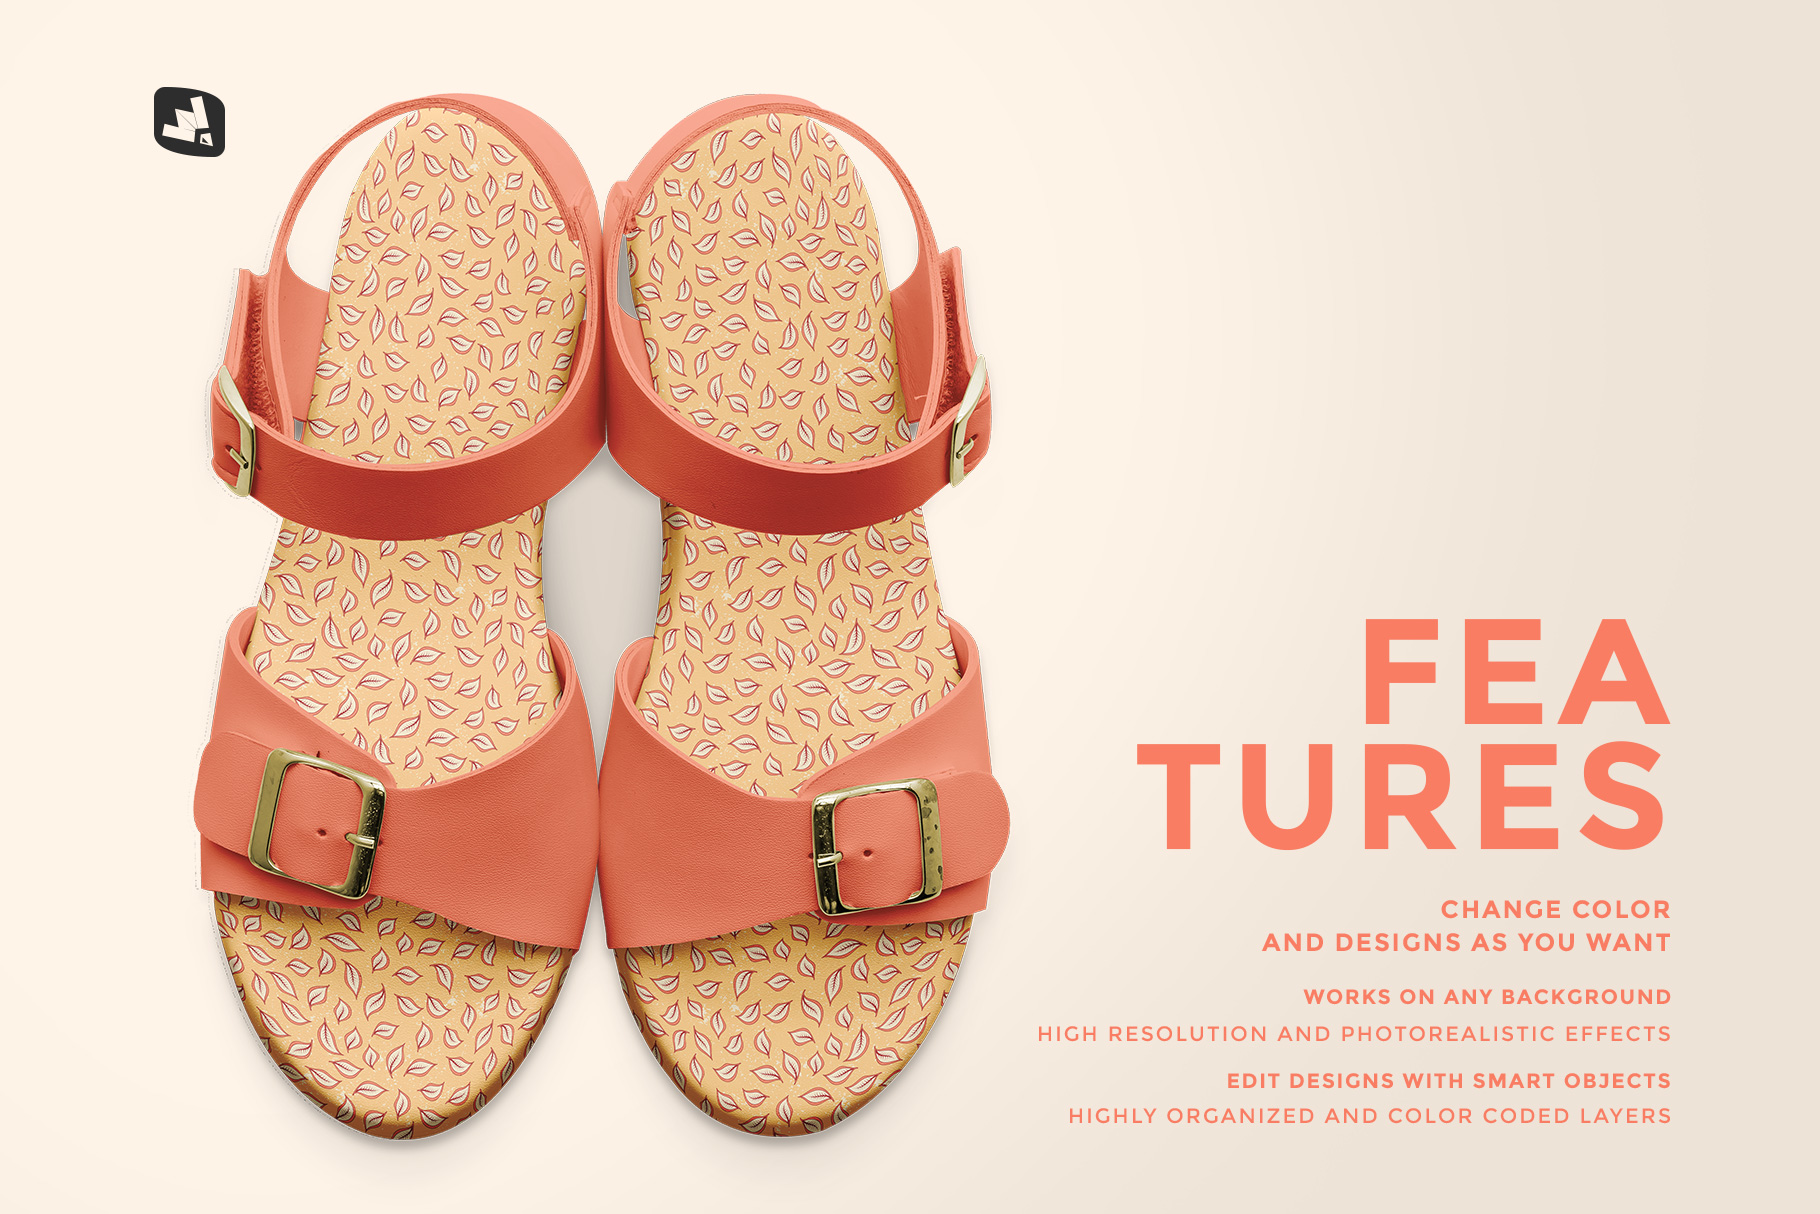 features of the top view leather sandal mockup